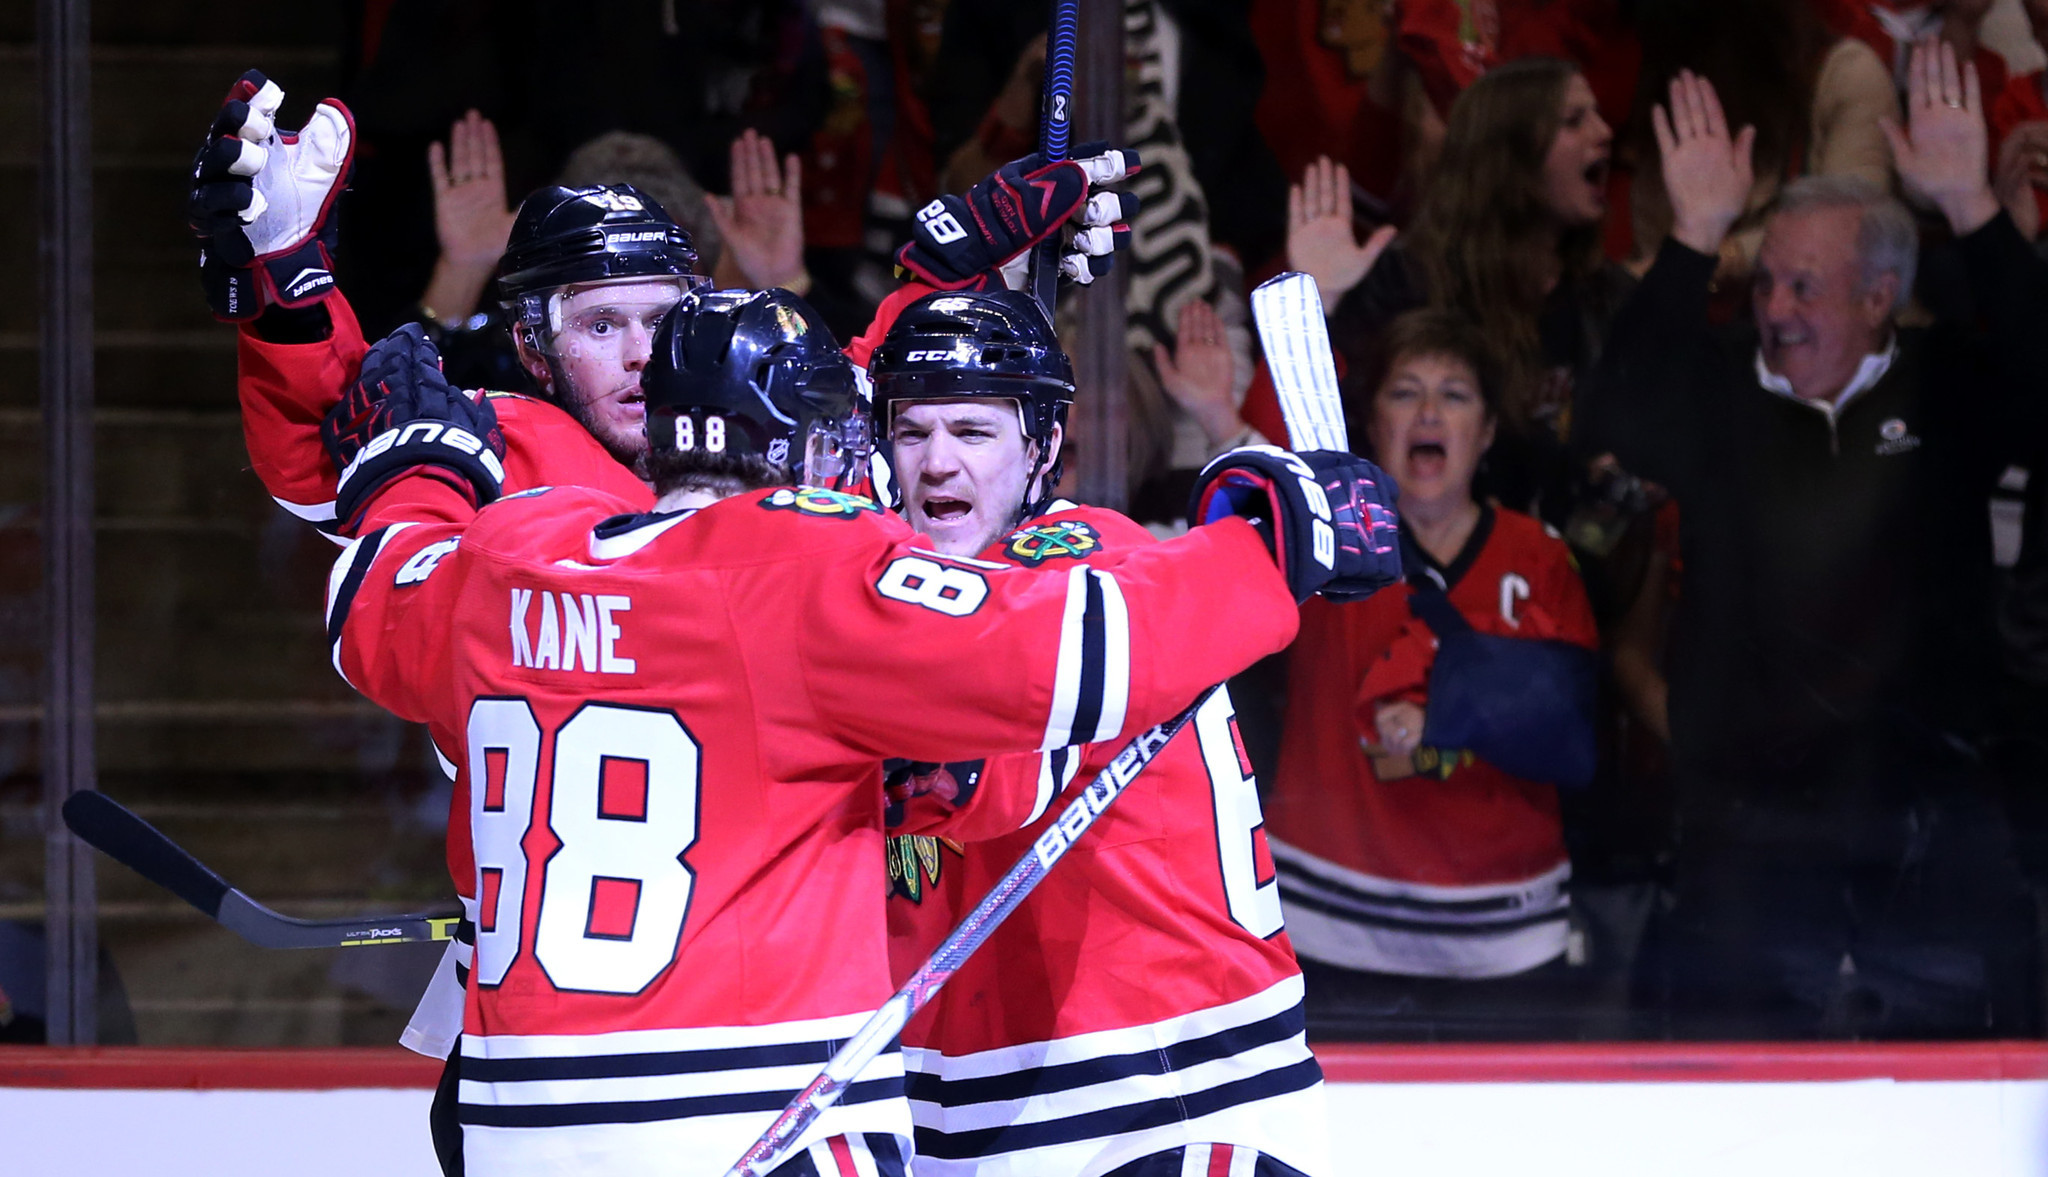 Ct-blackhawks-blues-game-6-observations-20160424